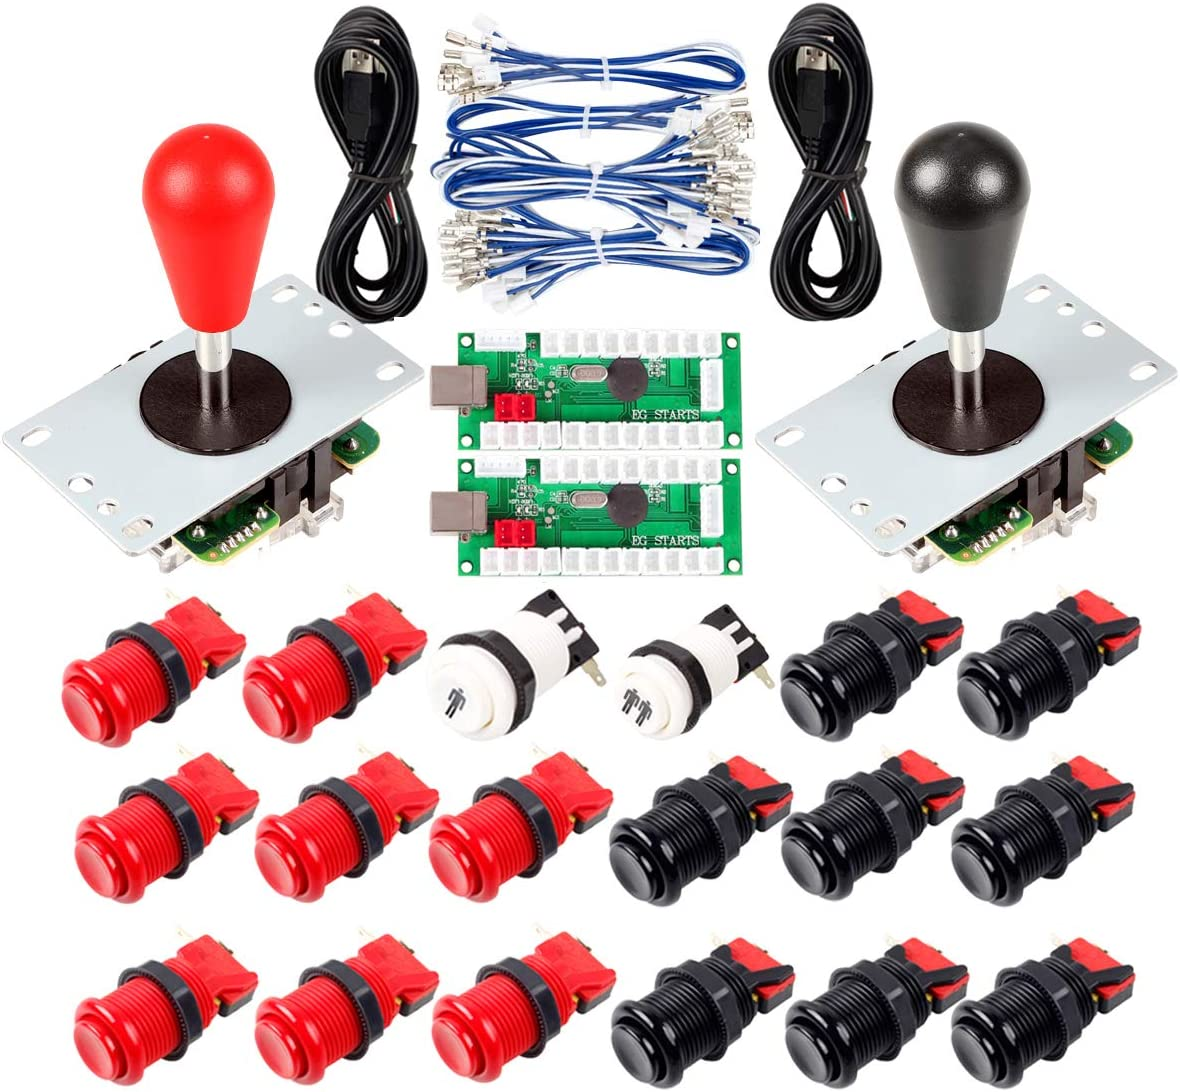 Avisiri 2 Player Arcade Joystick DIY Parts 2X USB Encoder + 2X Elliptical Joystick Hanlde + 18x American Style Arcade Buttons for PC, MAME, Raspberry Pi, Windows (Red & Black)